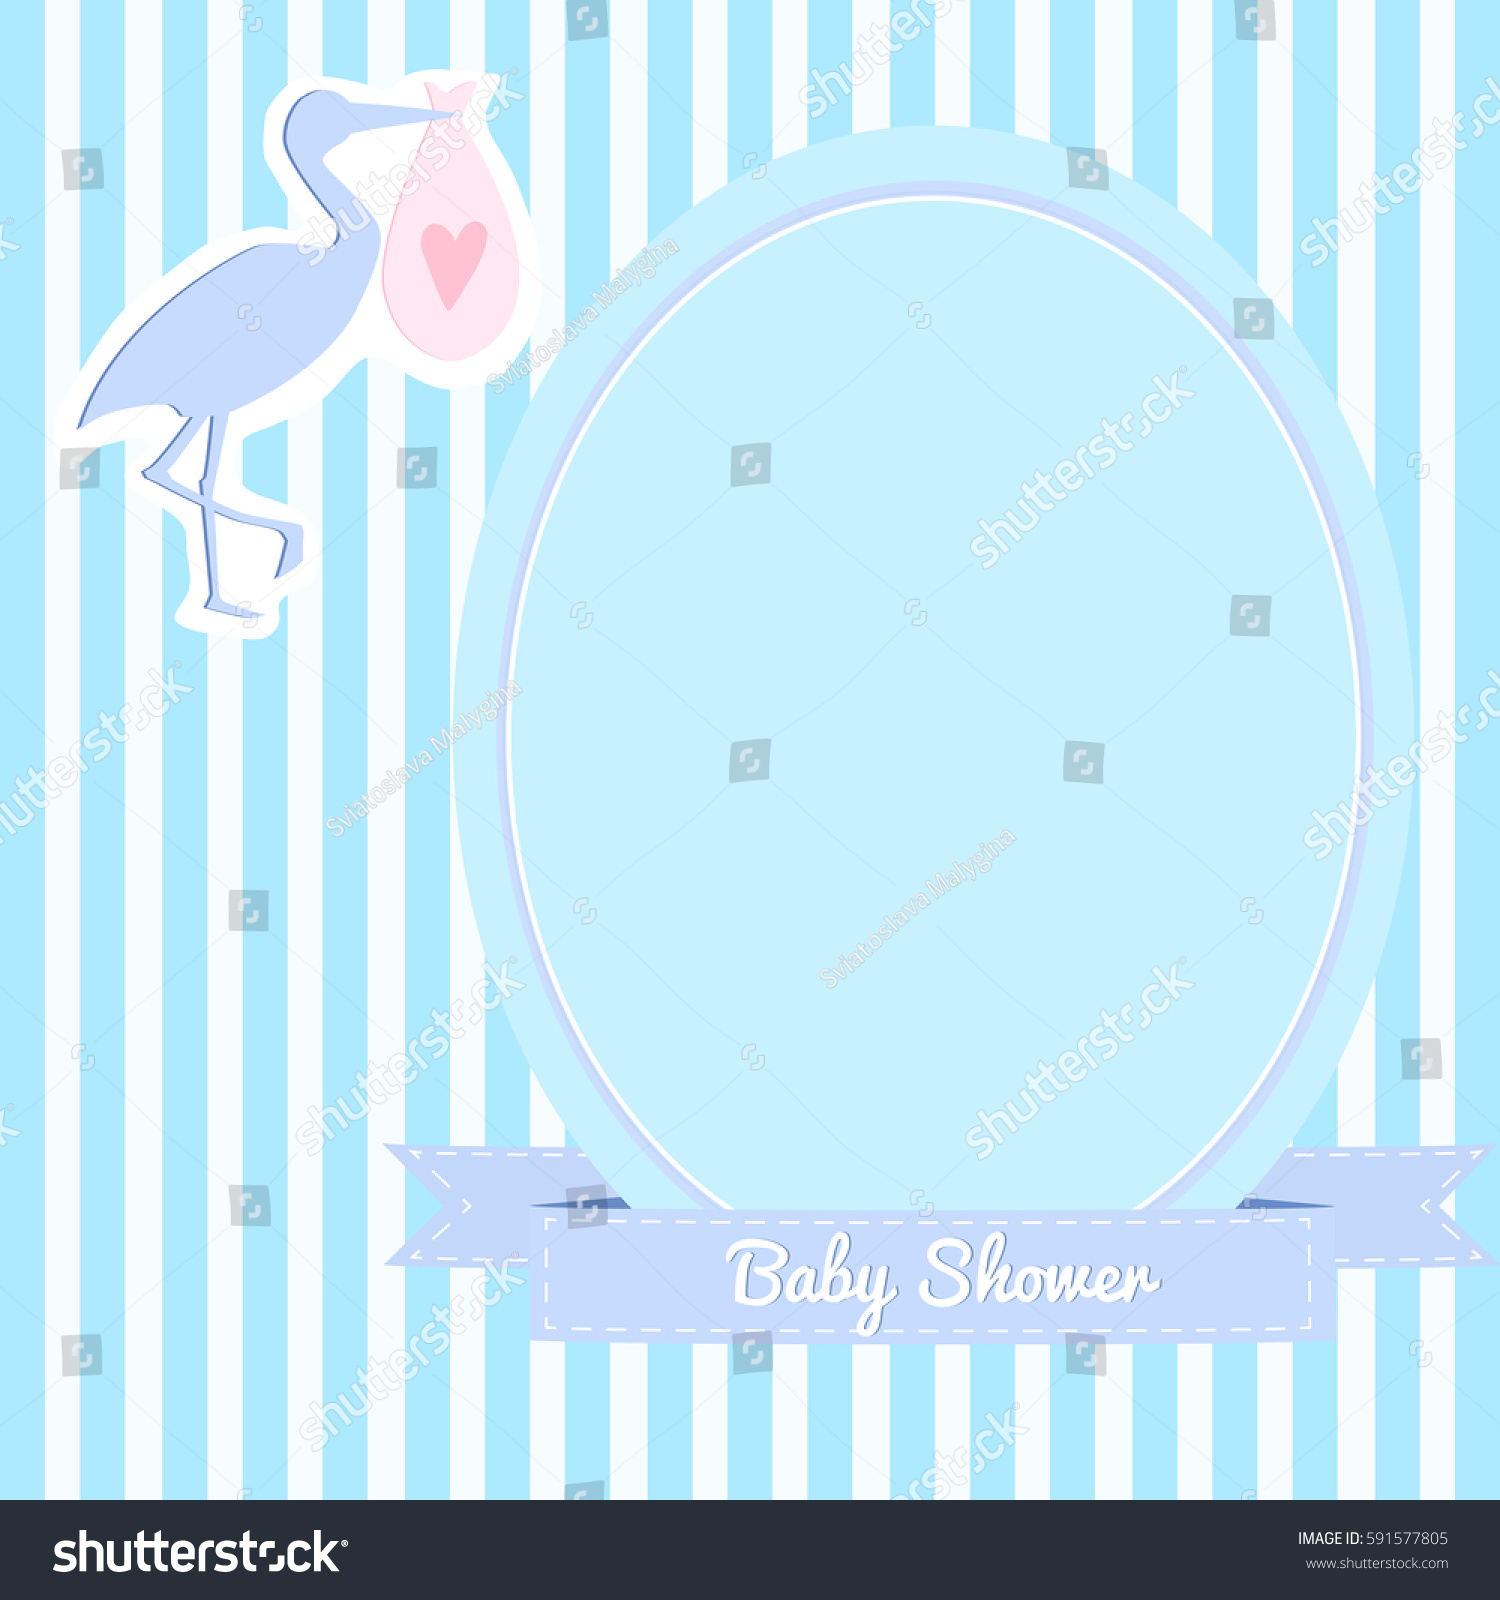 Simple Baby Shower Invitation Stork Striped Stock Vector 591577805 ...